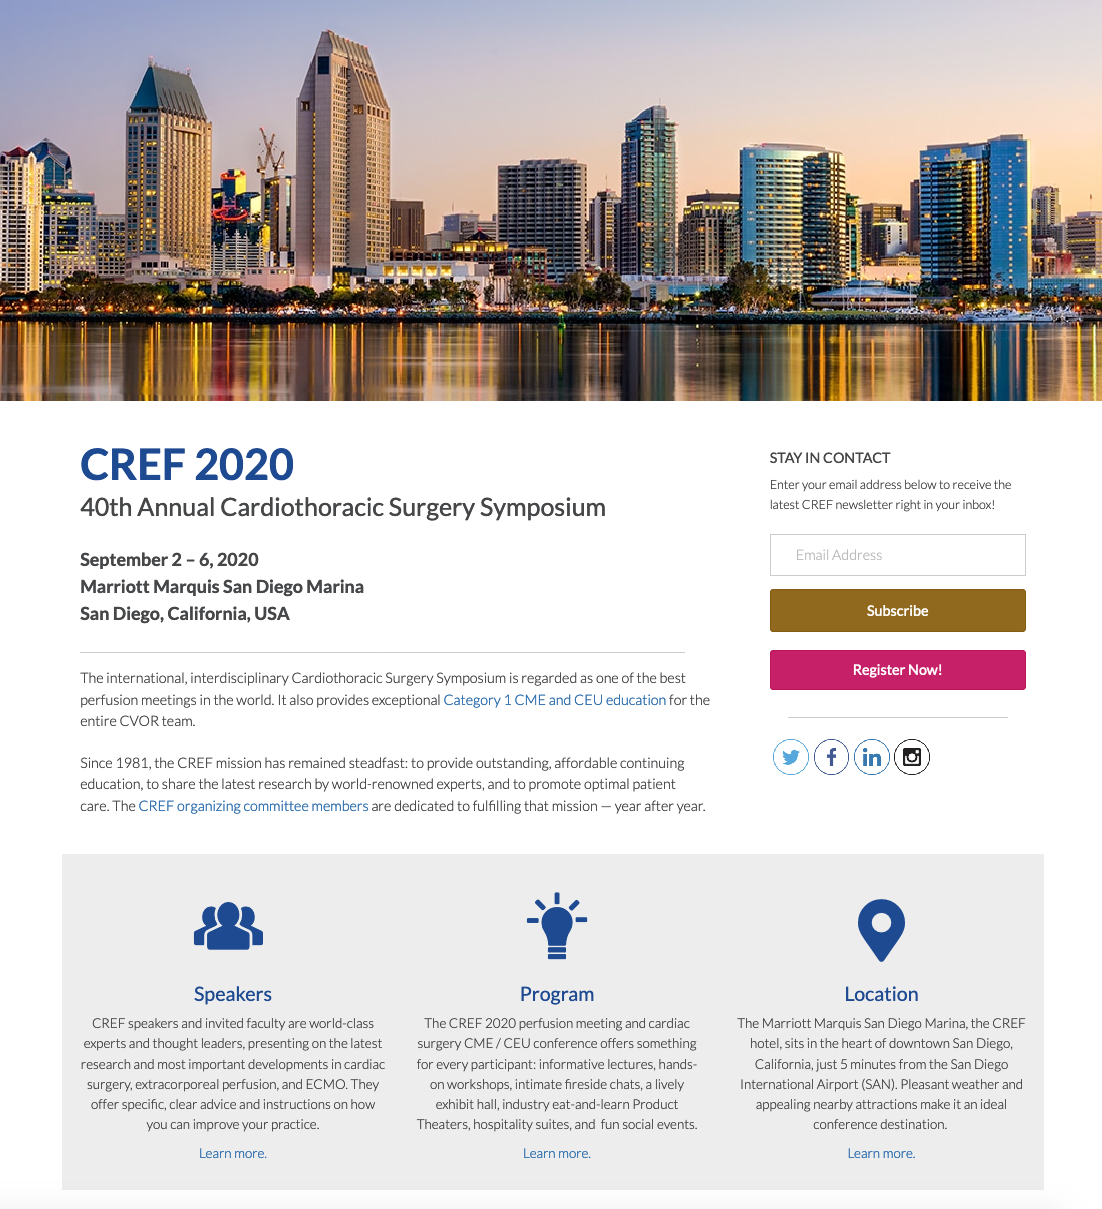 medical conference planner for CREF meeting San Diego